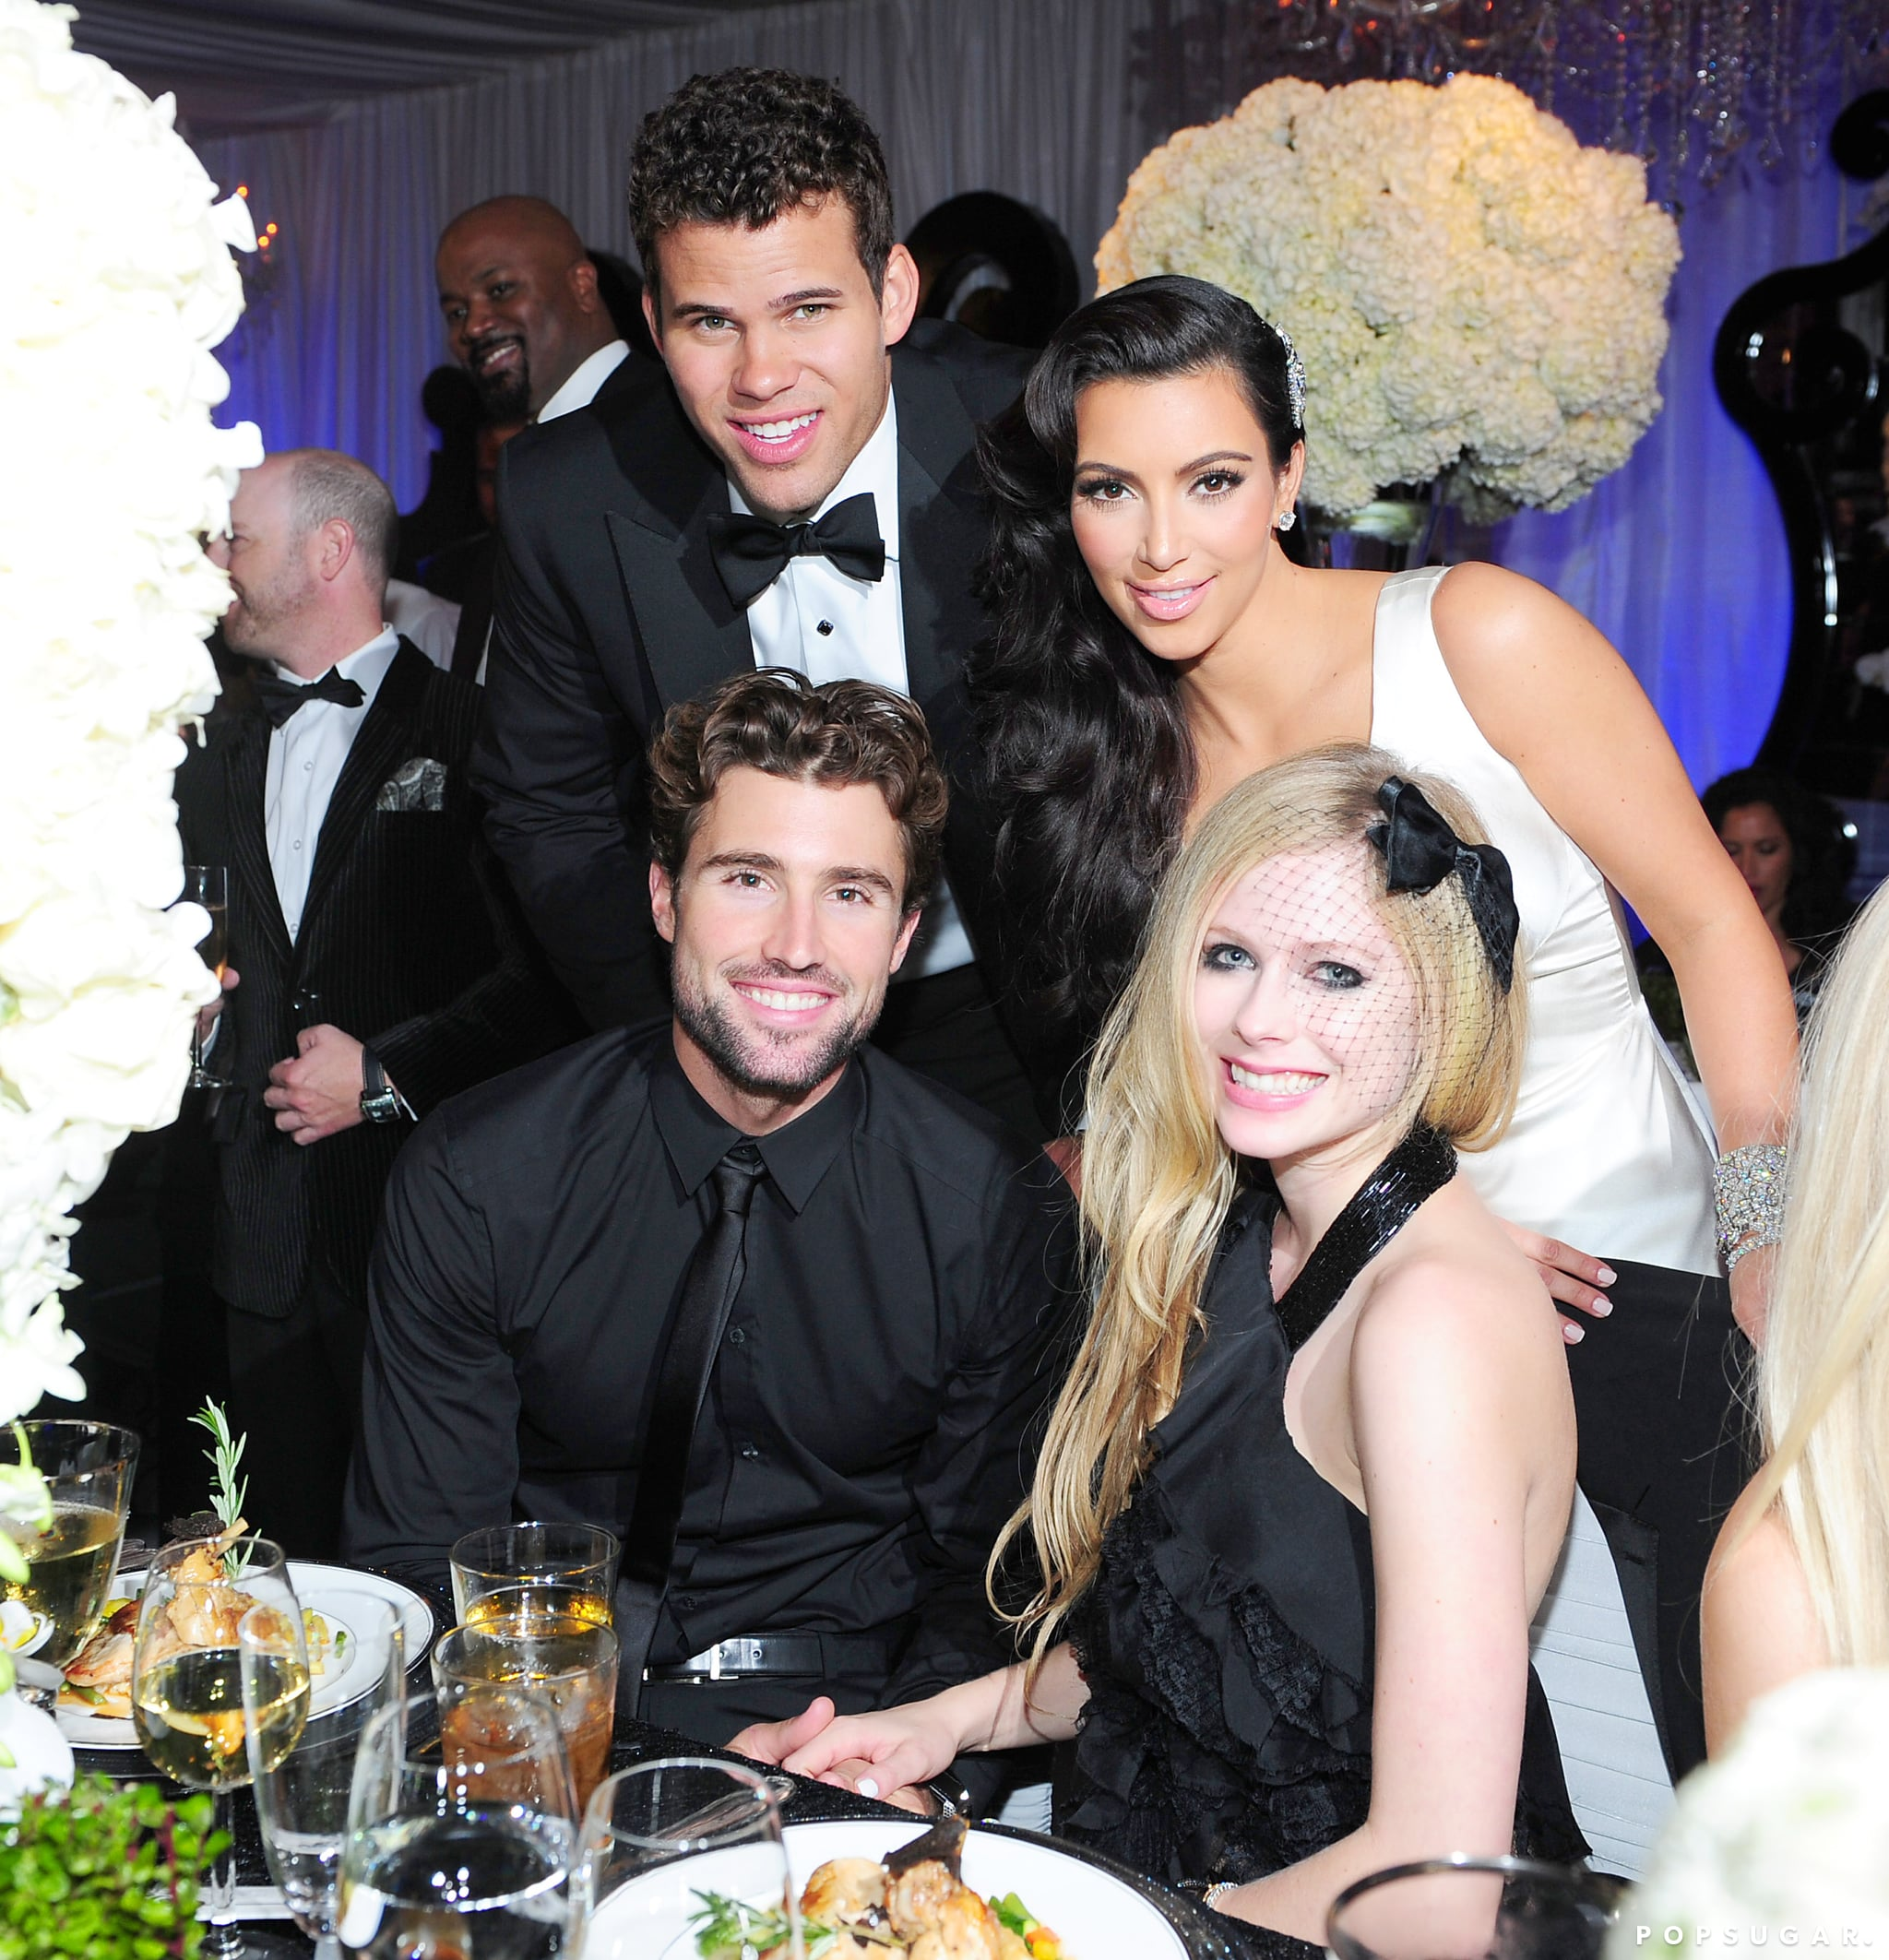 Brody Jenner brought then-girlfriend Avril Lavigne as his date.